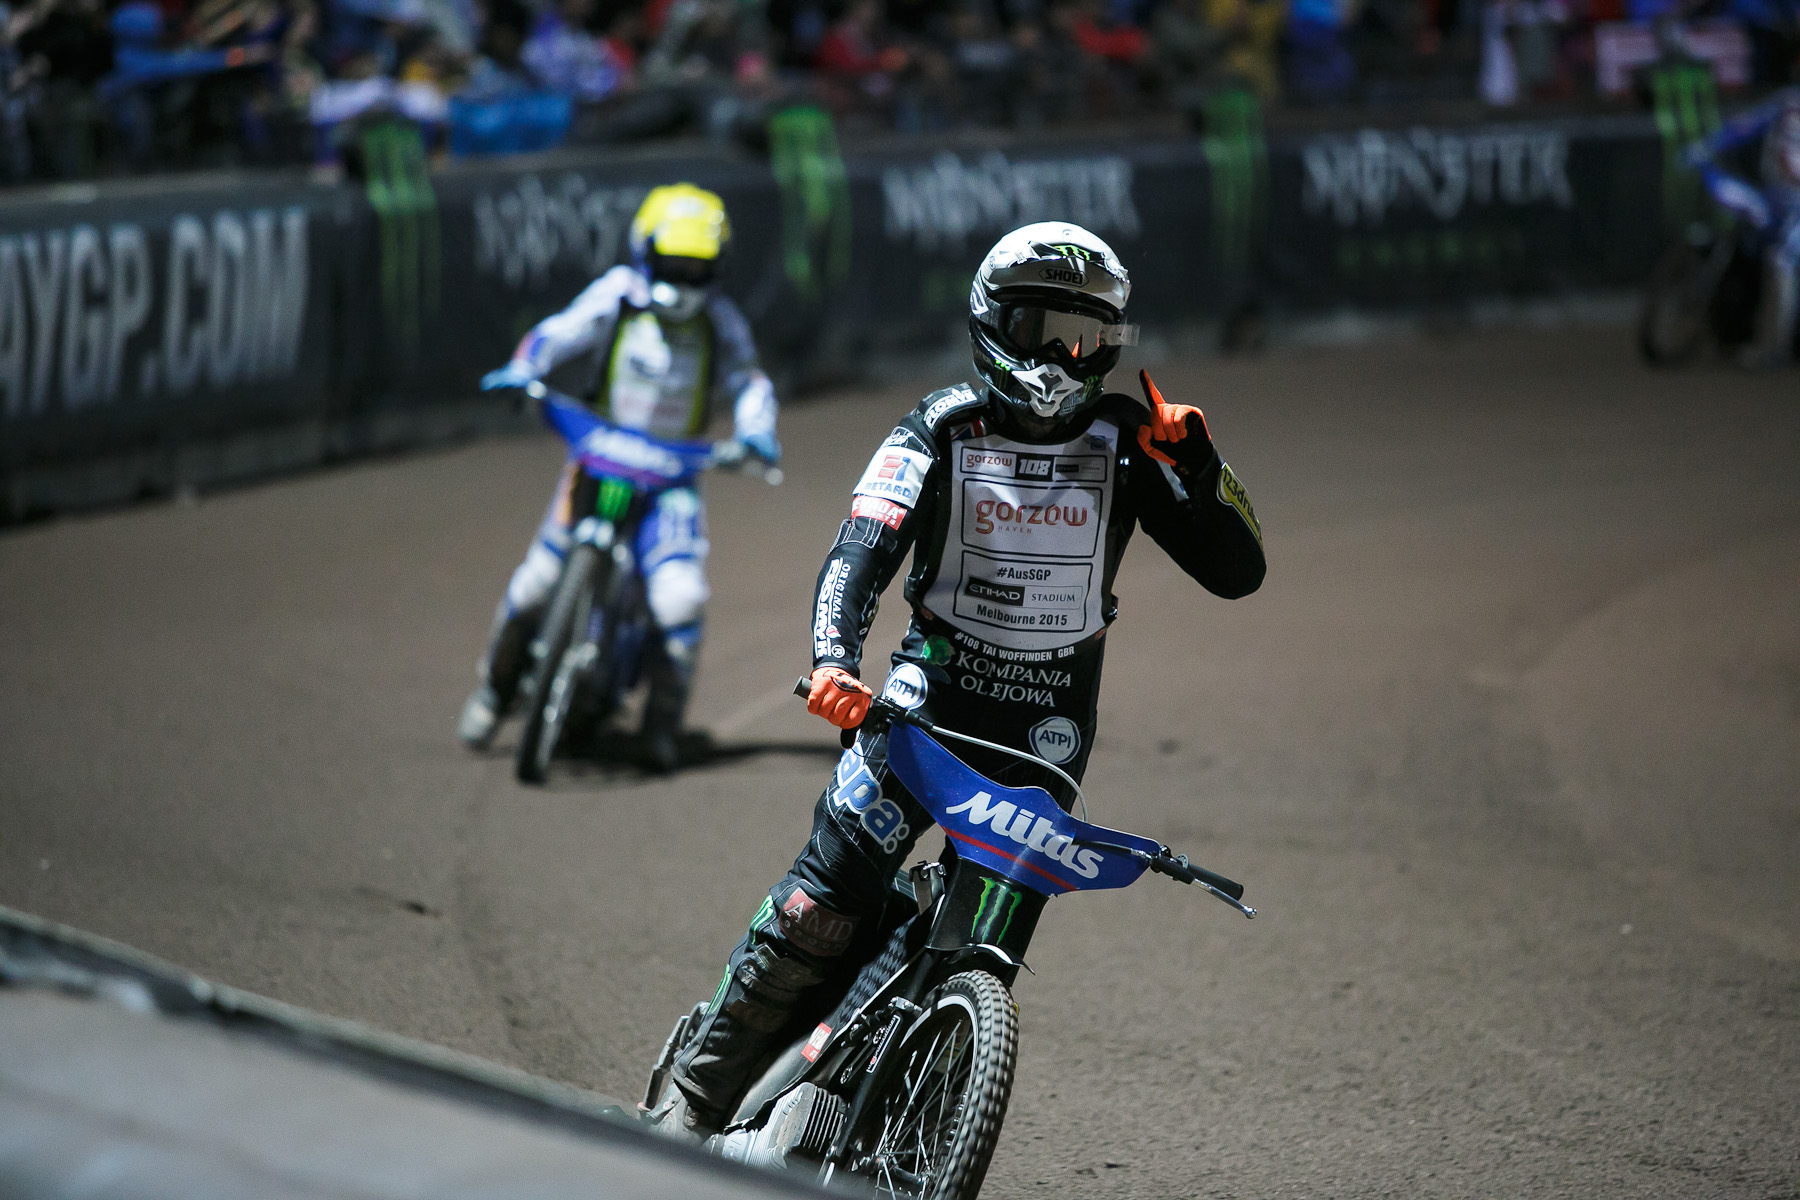 Tai Woffinden of Great Britain gestures to the audience after winning heat 12 at the Mitas Slovenian FIM Speedway Grand Prix at Matija Gubec Stadium in Krsko, Slovenia, Sep. 12, 2015.